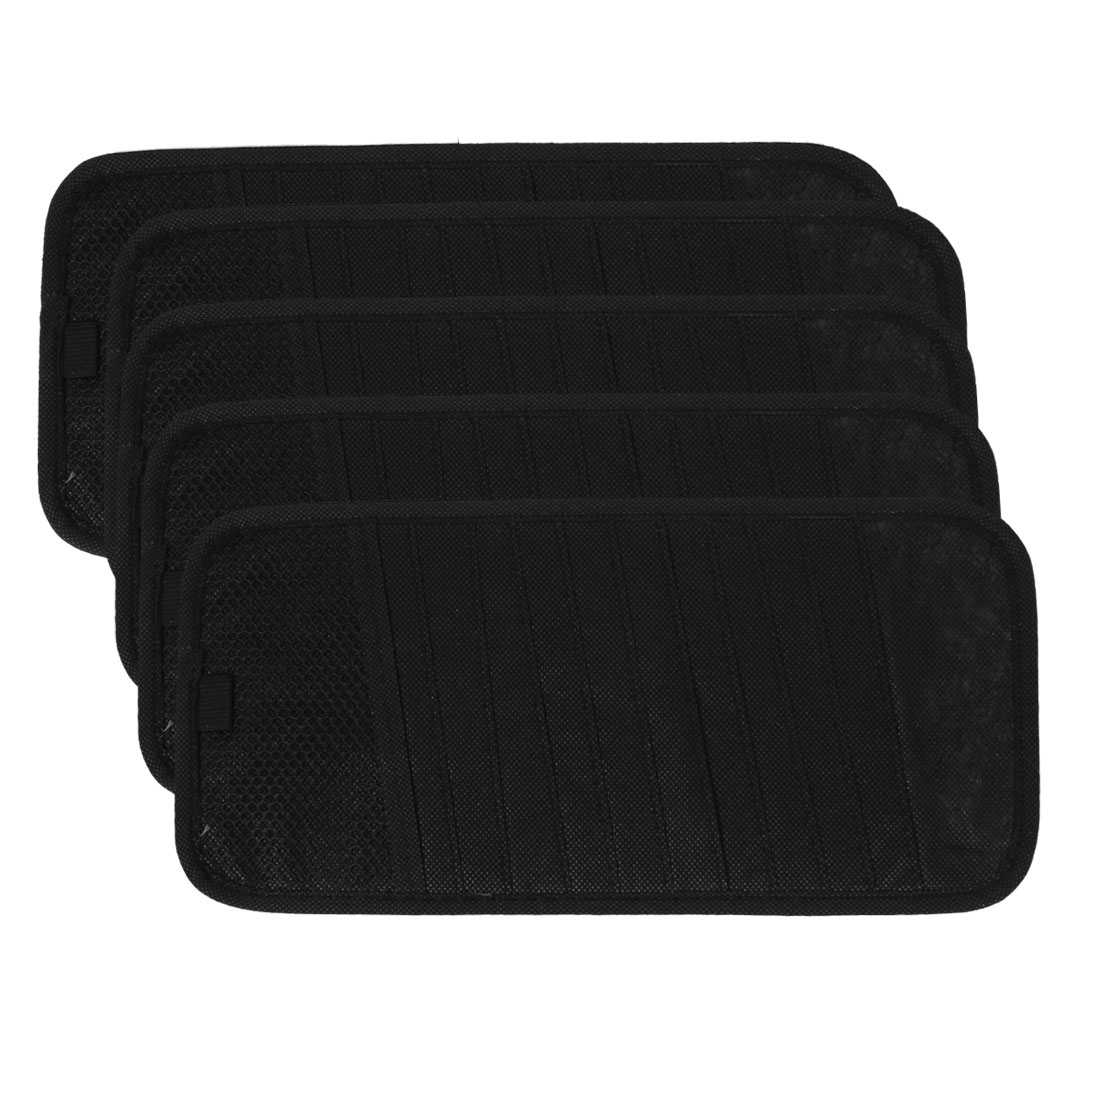 5 Pcs Non-woven 12 Compartments Sun Visor CD Sun Visor Holder Case Black